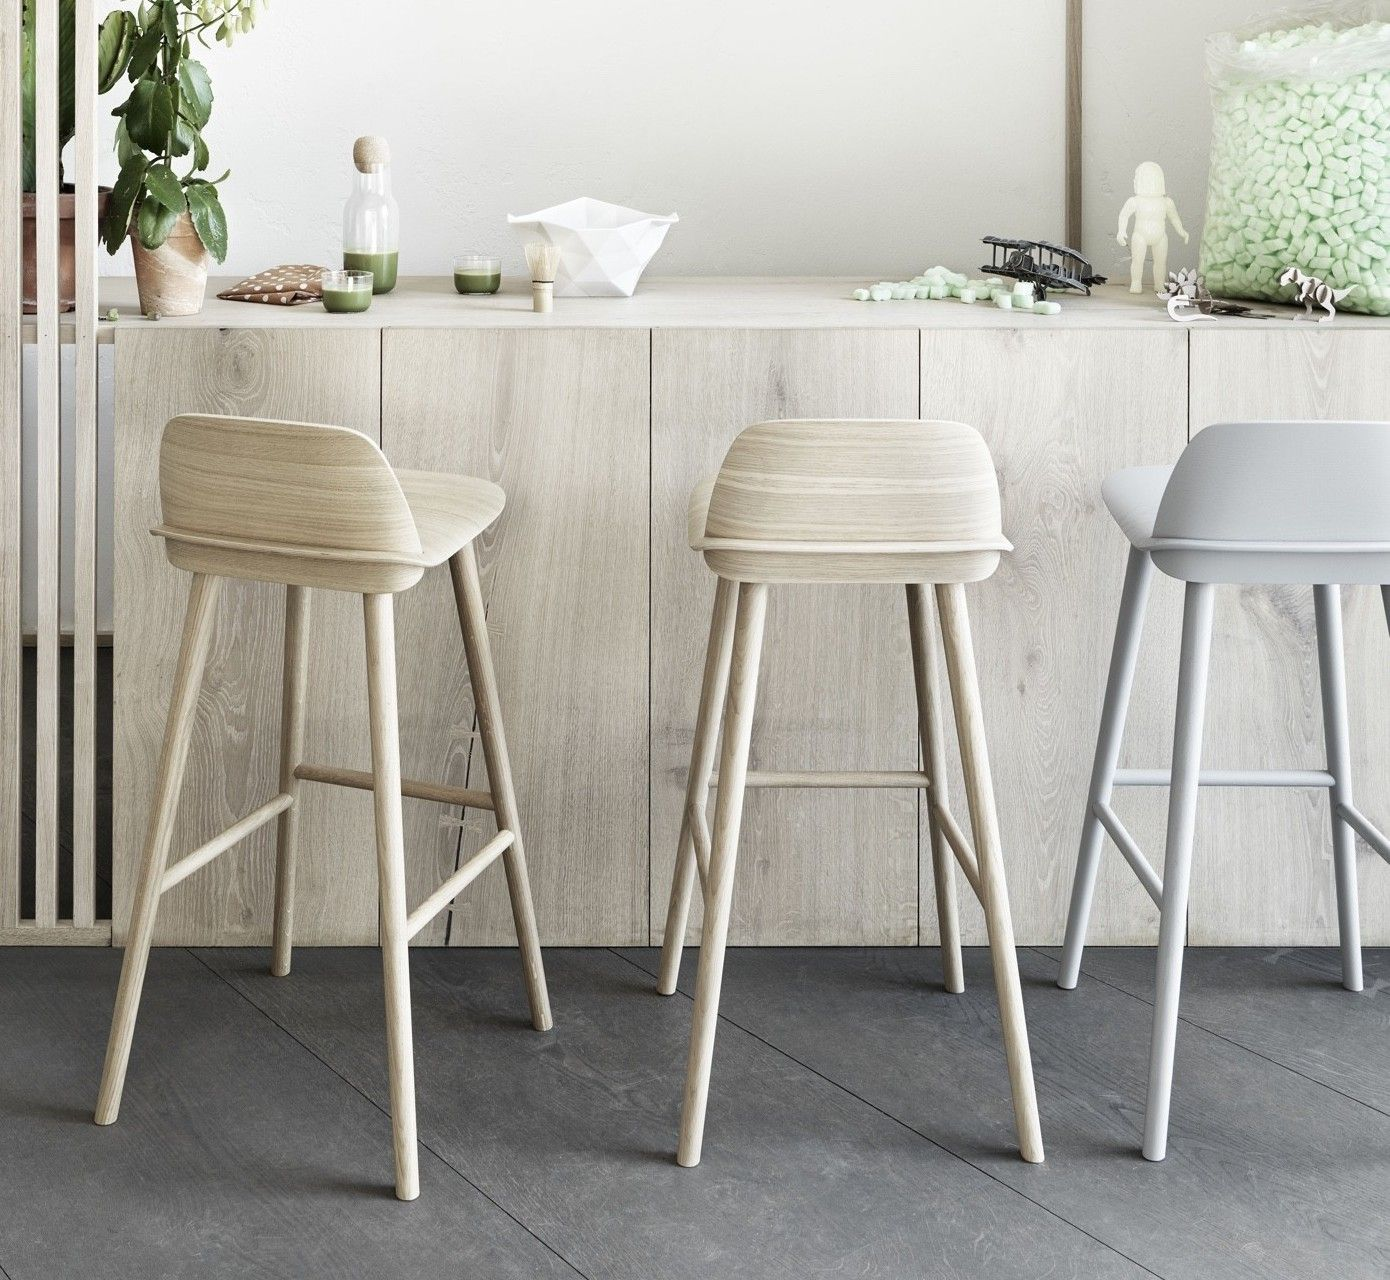 Muuto Nerd Bar Stool Breakfast Bar Chairs Kitchen Bar Stools Bar Stools